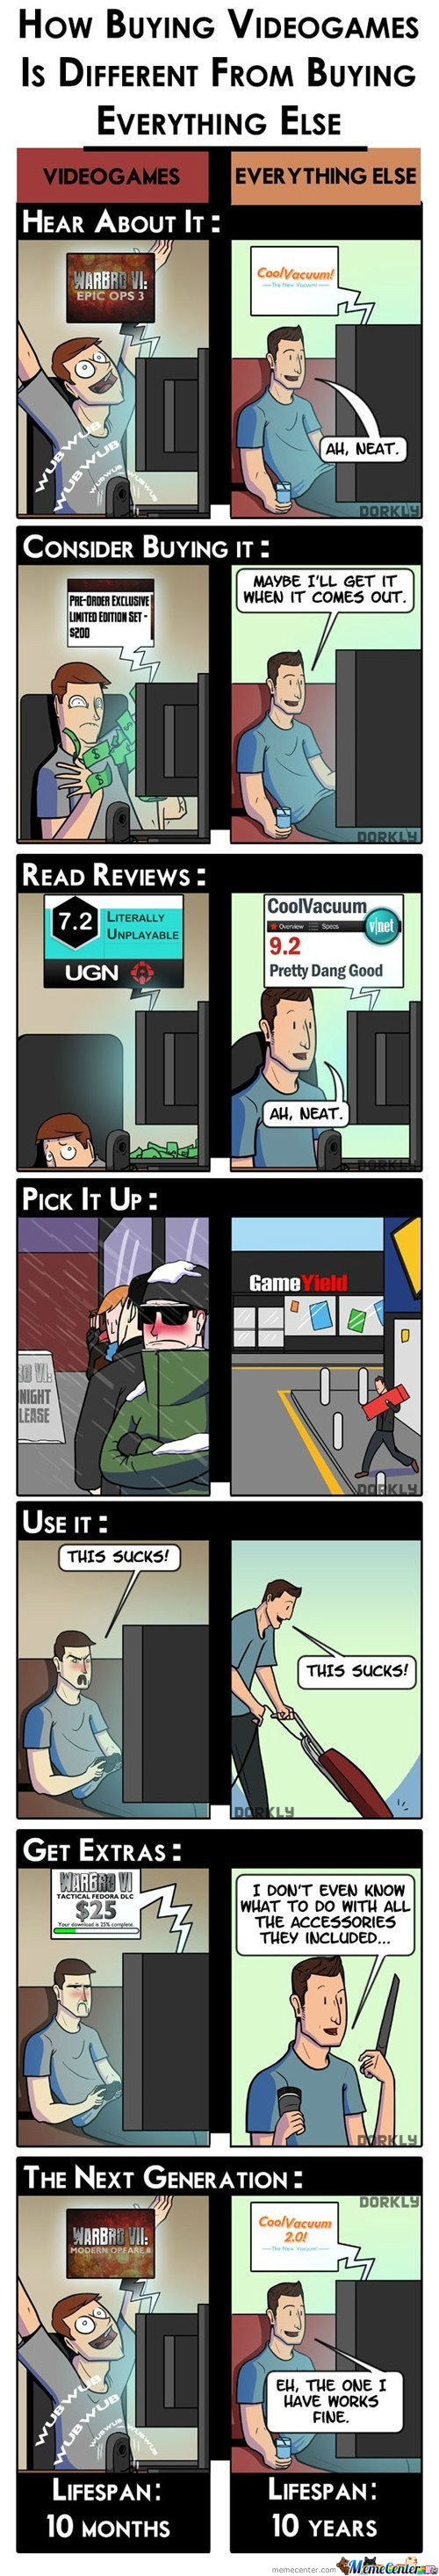 Buying Video Games Is Different From Buying Everything Else By Dorkly